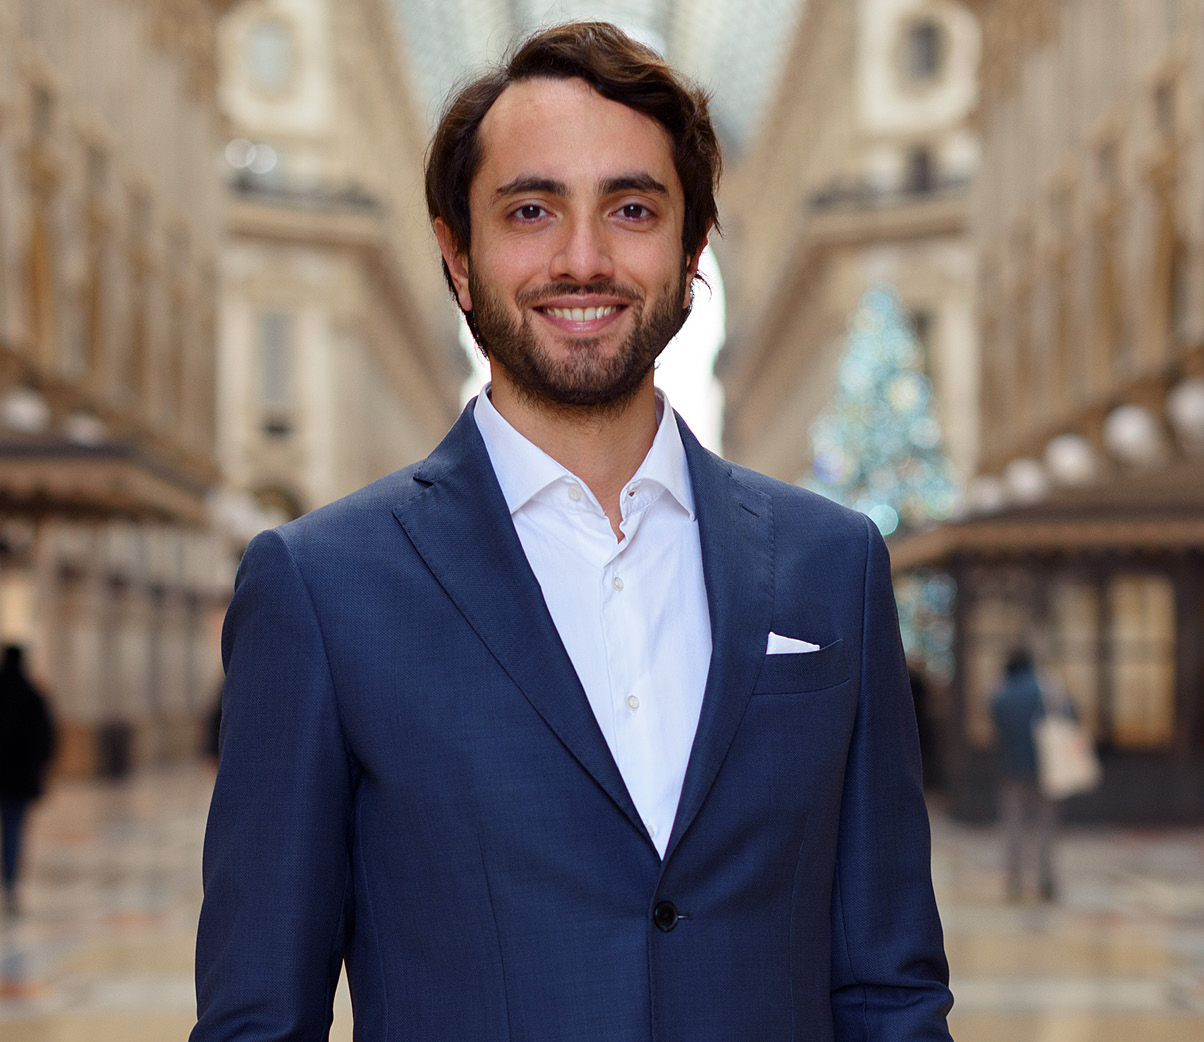 Engage: Captify Expands Italian Presence With The Hiring Of Plinio Macella As Senior Sales Lead